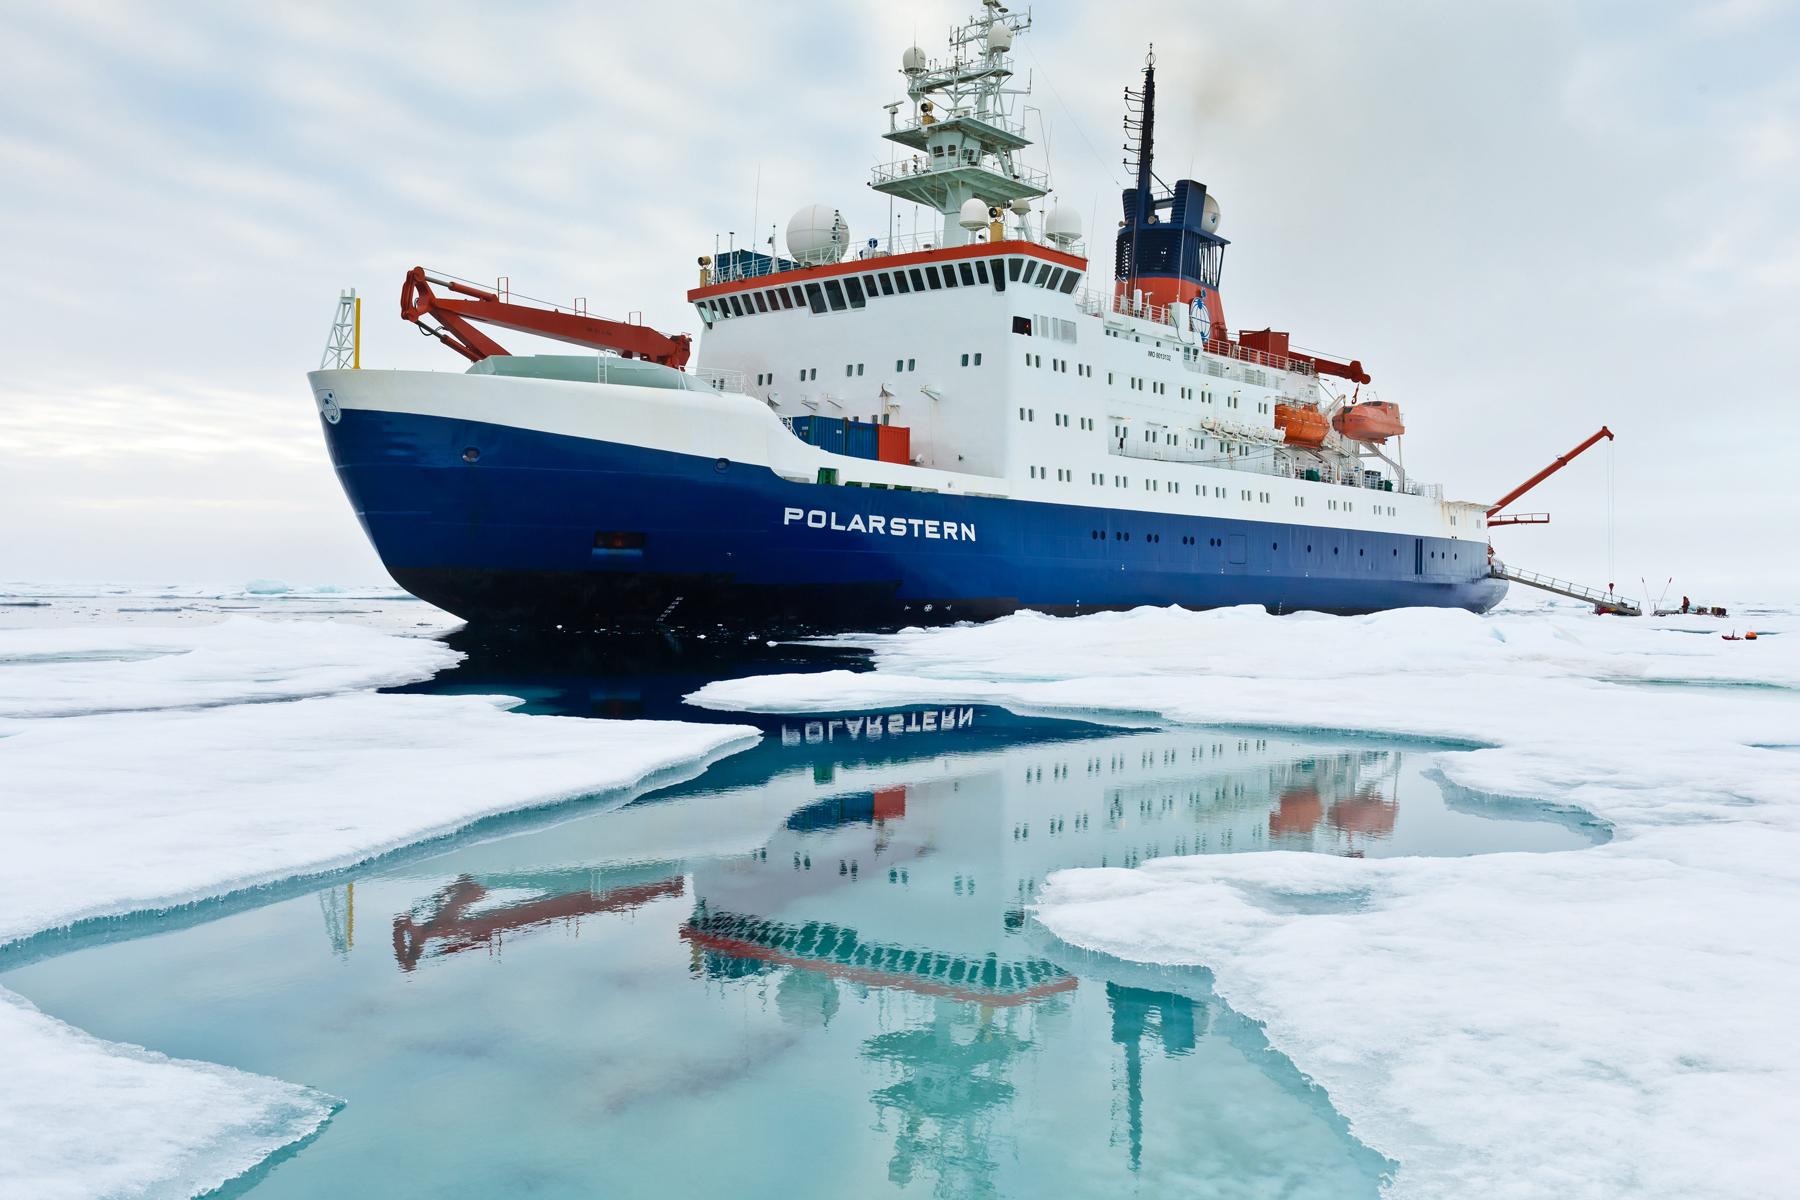 """<p>In 2019 this ship will carry a crew of scientists, includingMatthew Shupefrom the University of Colorado,on a voyage to recreate Fridtjof Nansen'spolar expedition. The project is known as """"MOSAiC"""" for Multidisciplinary drifting Observatory for the Study of Arctic Climate.</p>"""